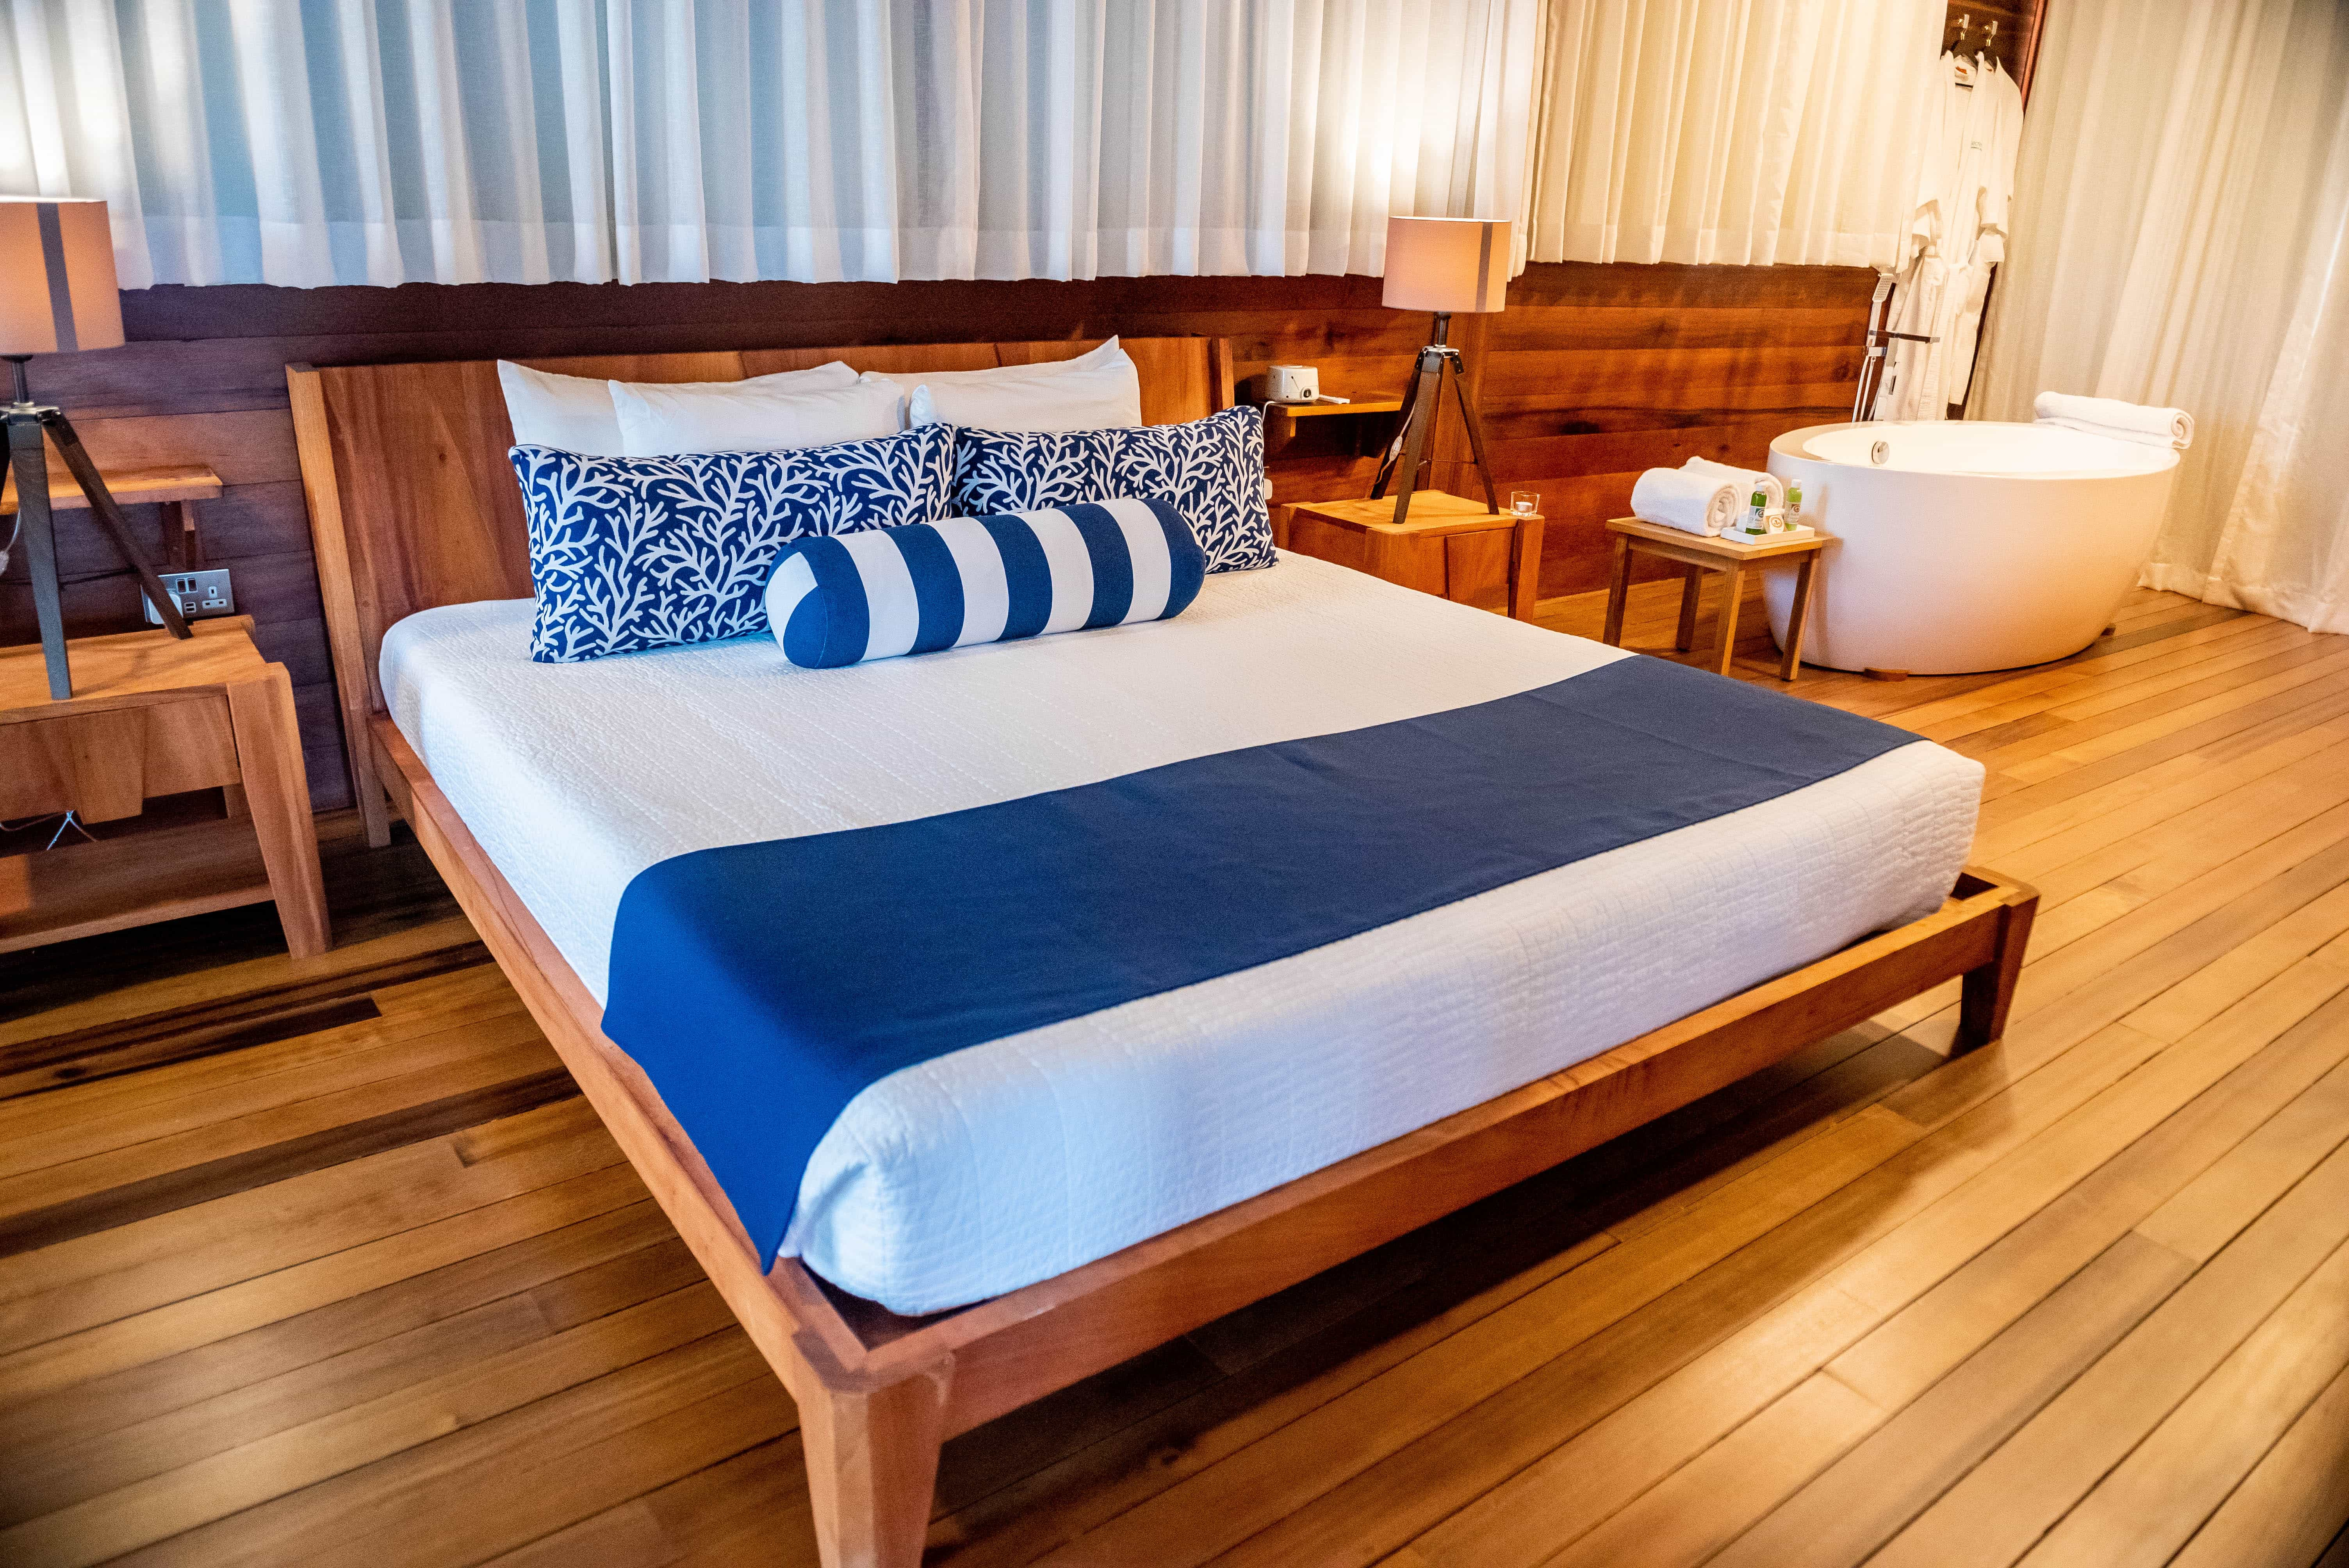 The rooms are well appointed with soothing beds and sensual soaking tubs.